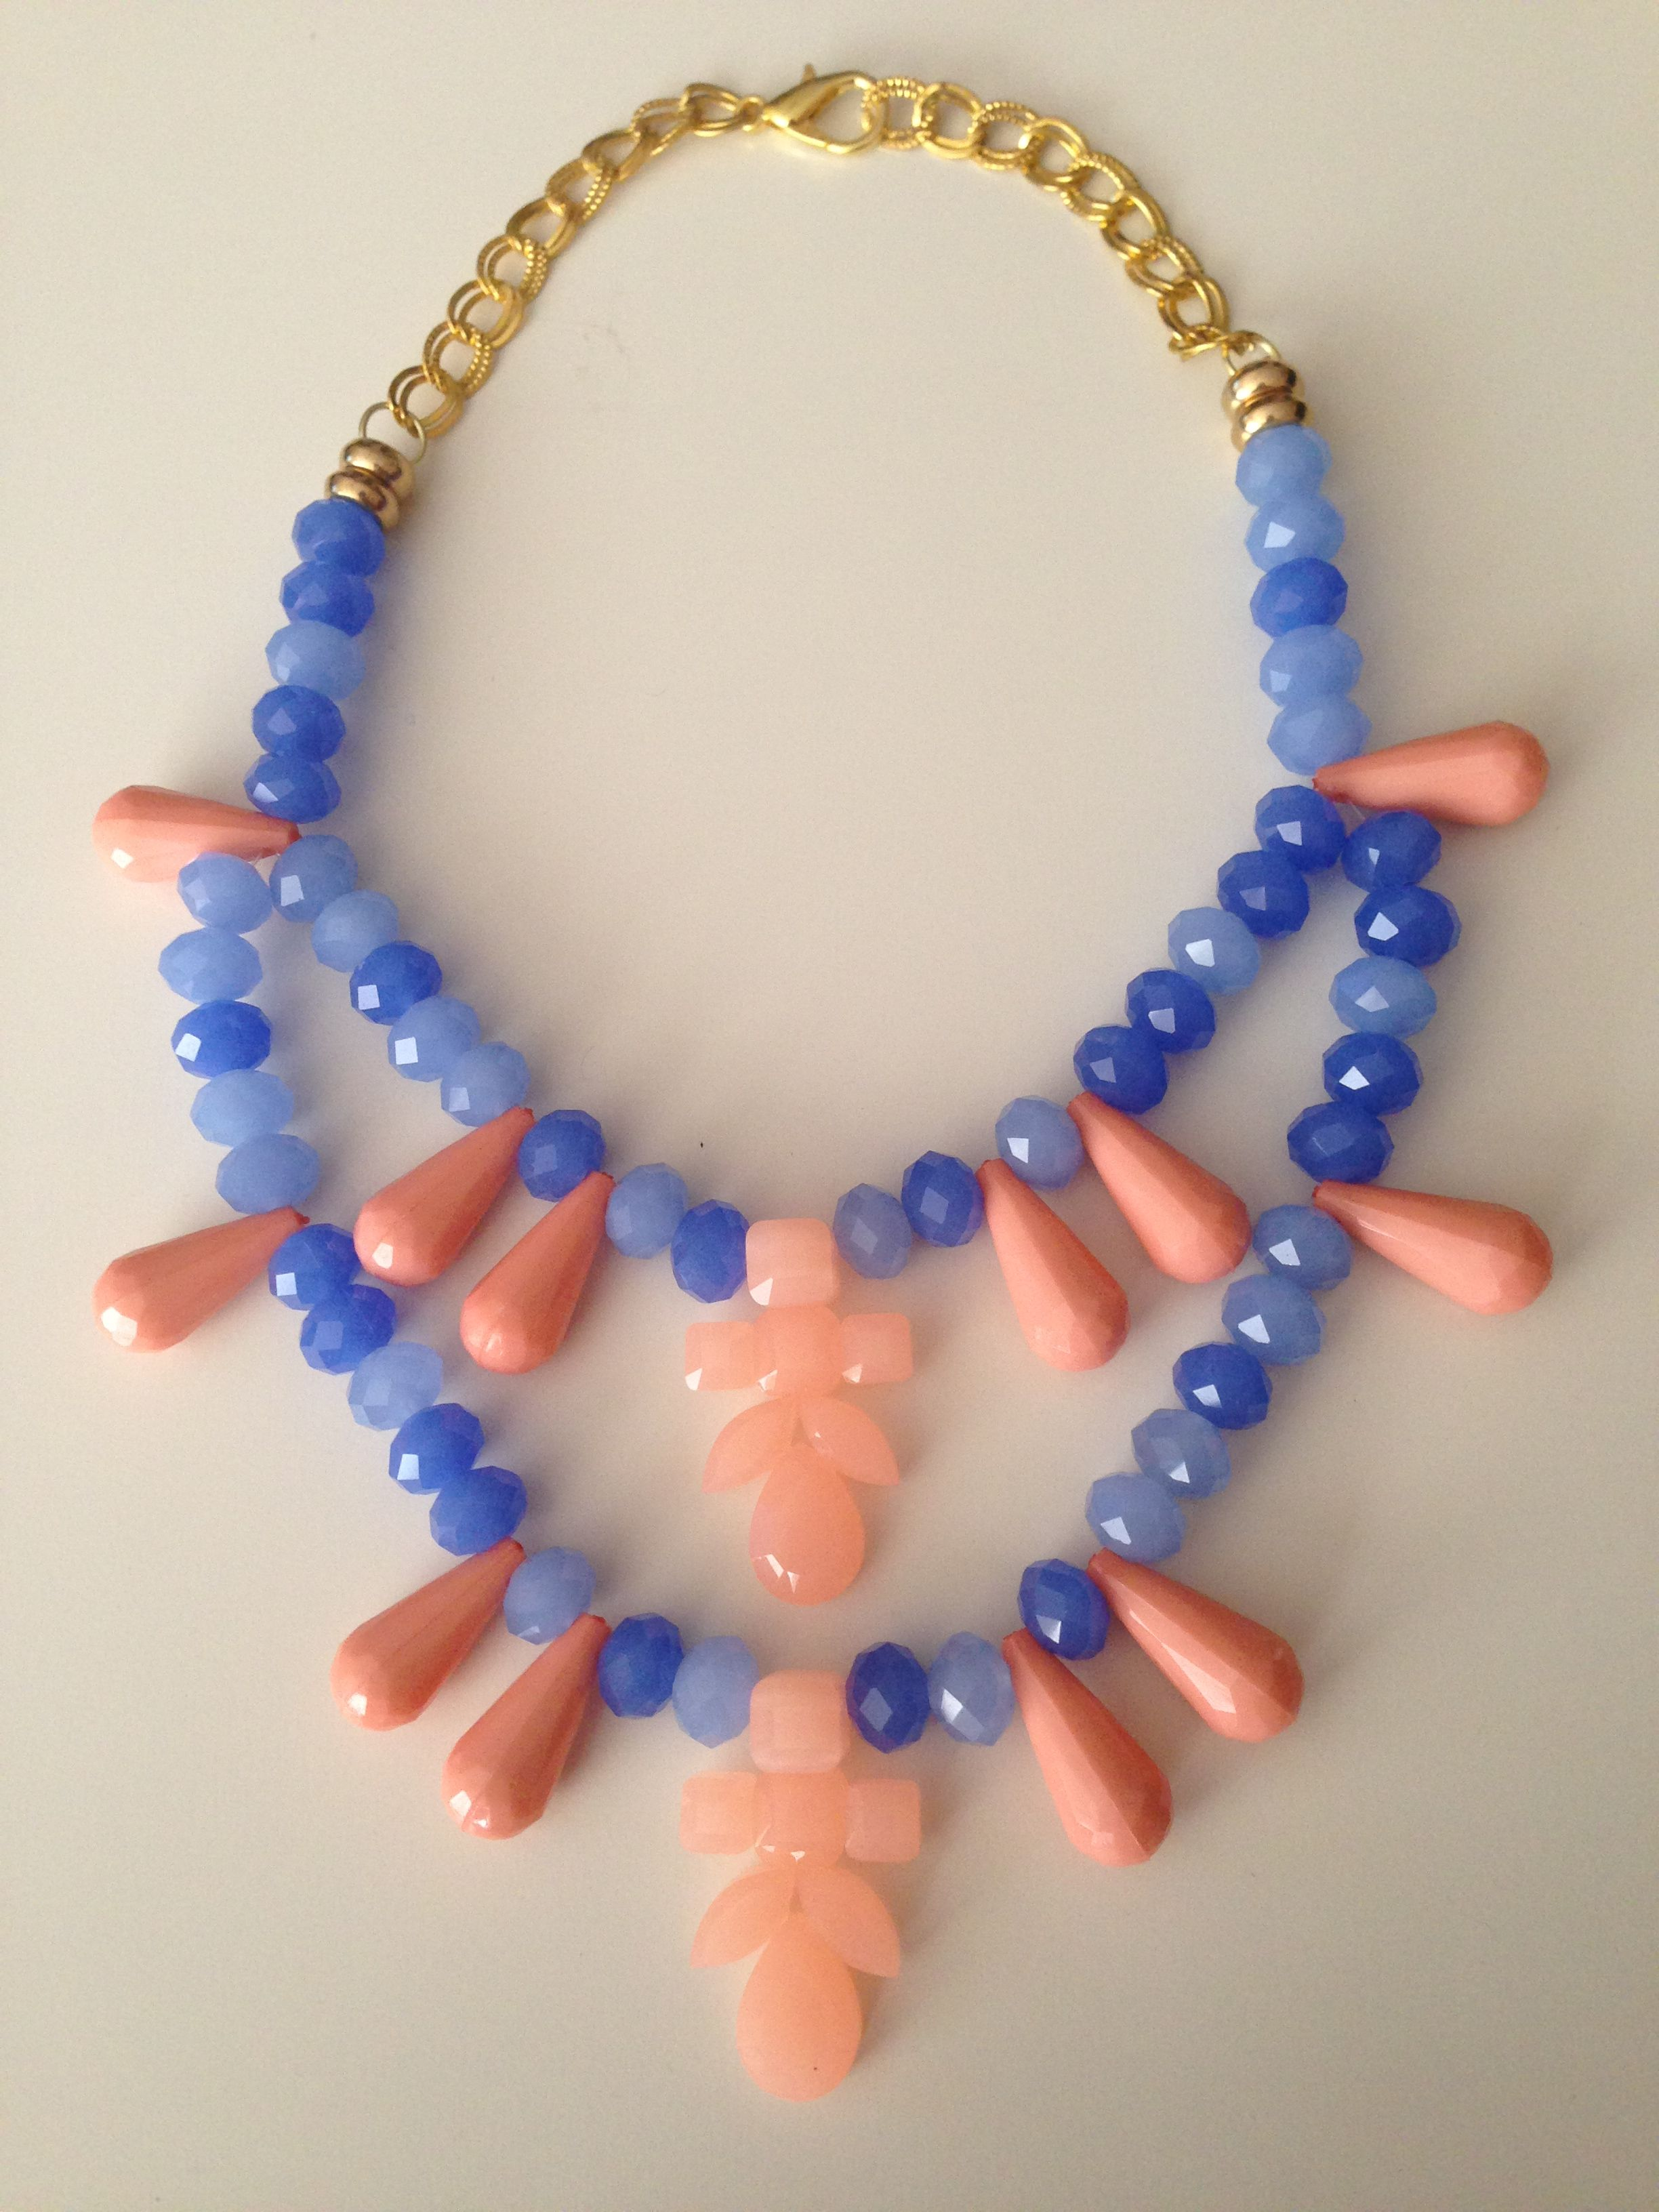 Necklace.handmade,collares,bisuteria